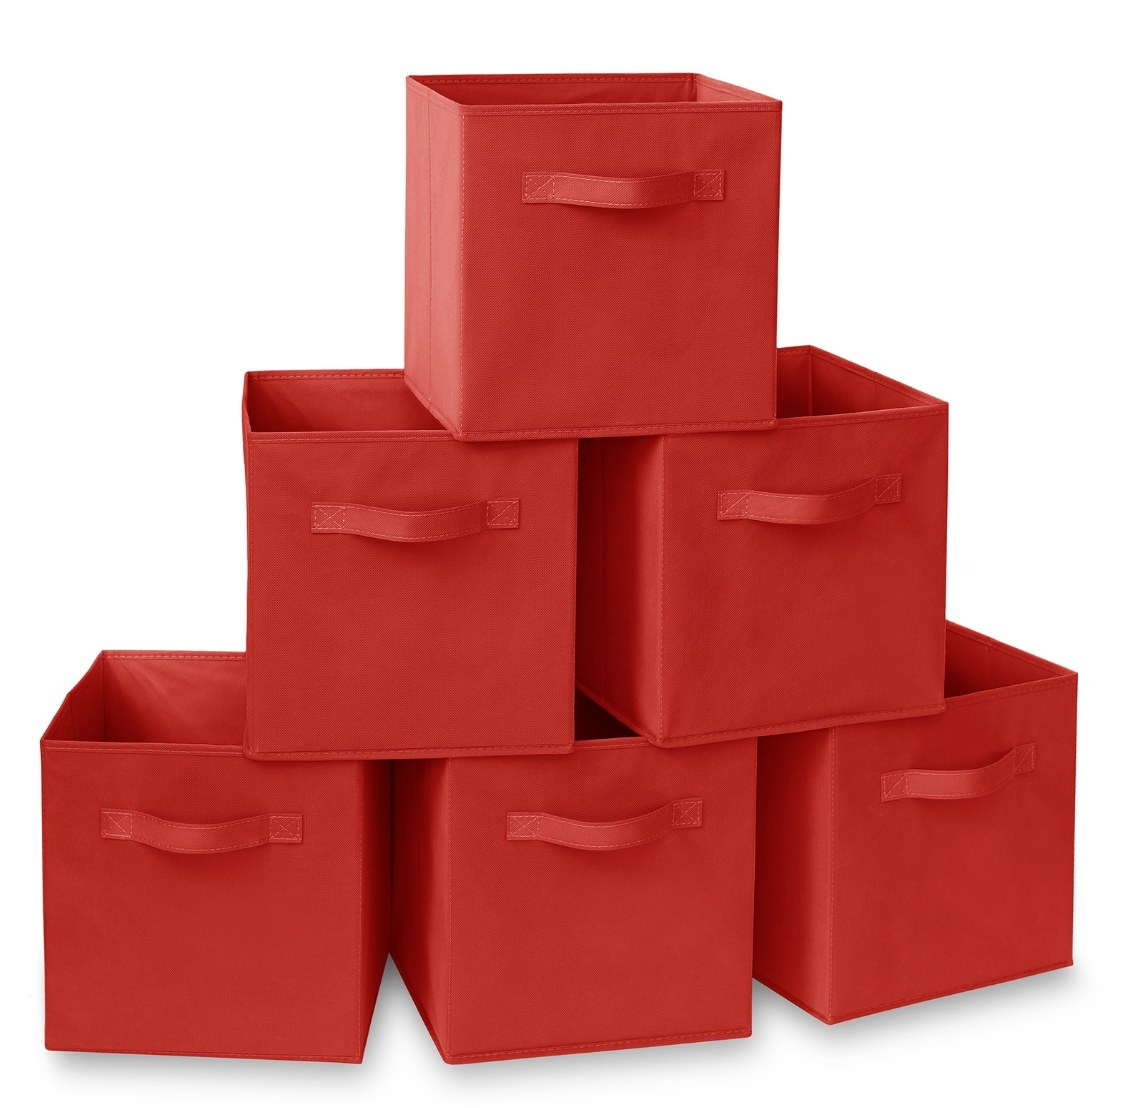 The set of six collapsible storage cubes in red